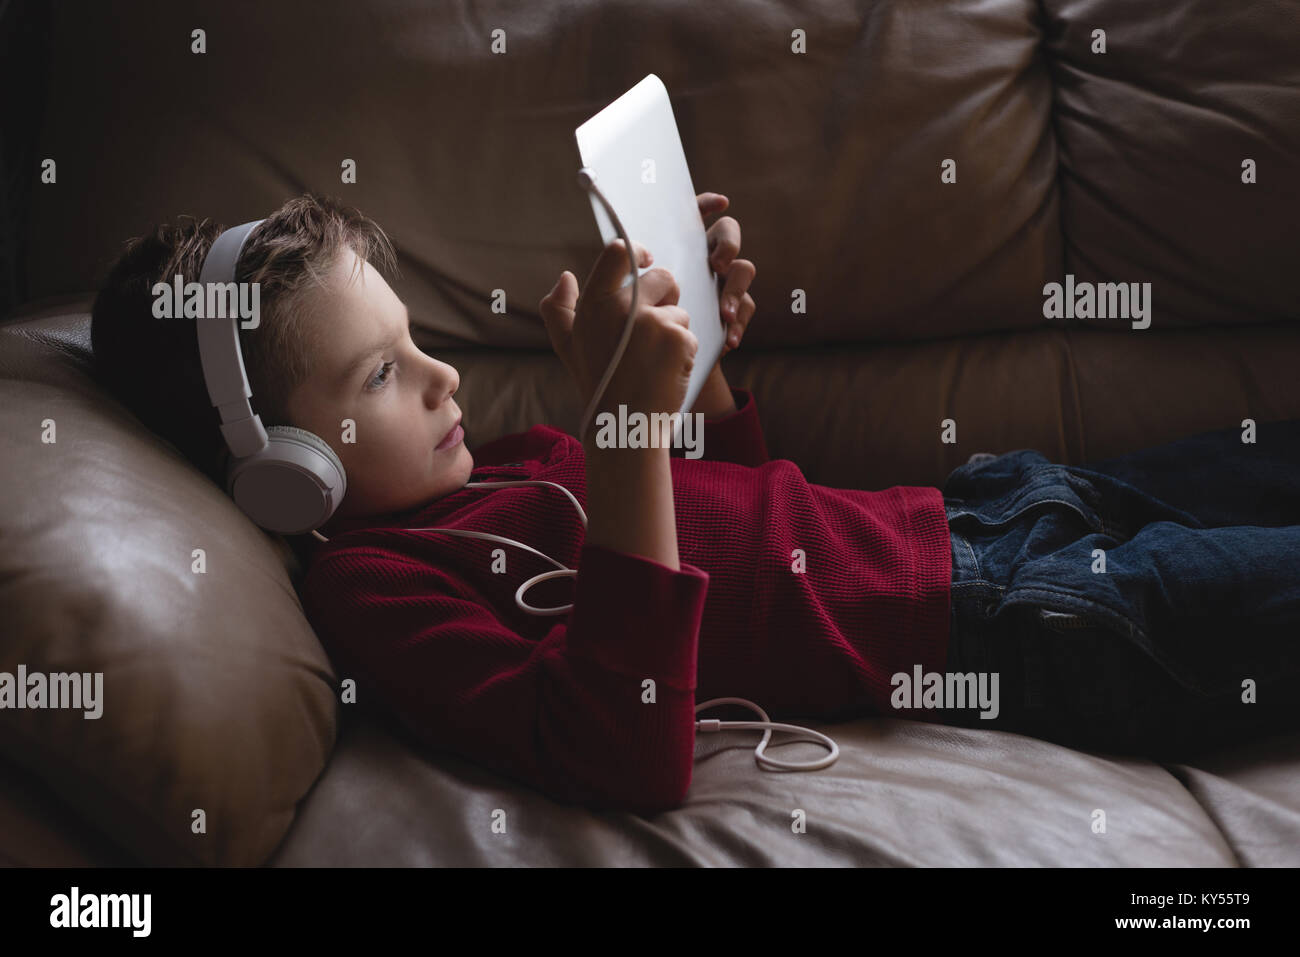 Boy using digital tablet with headphones in living room - Stock Image